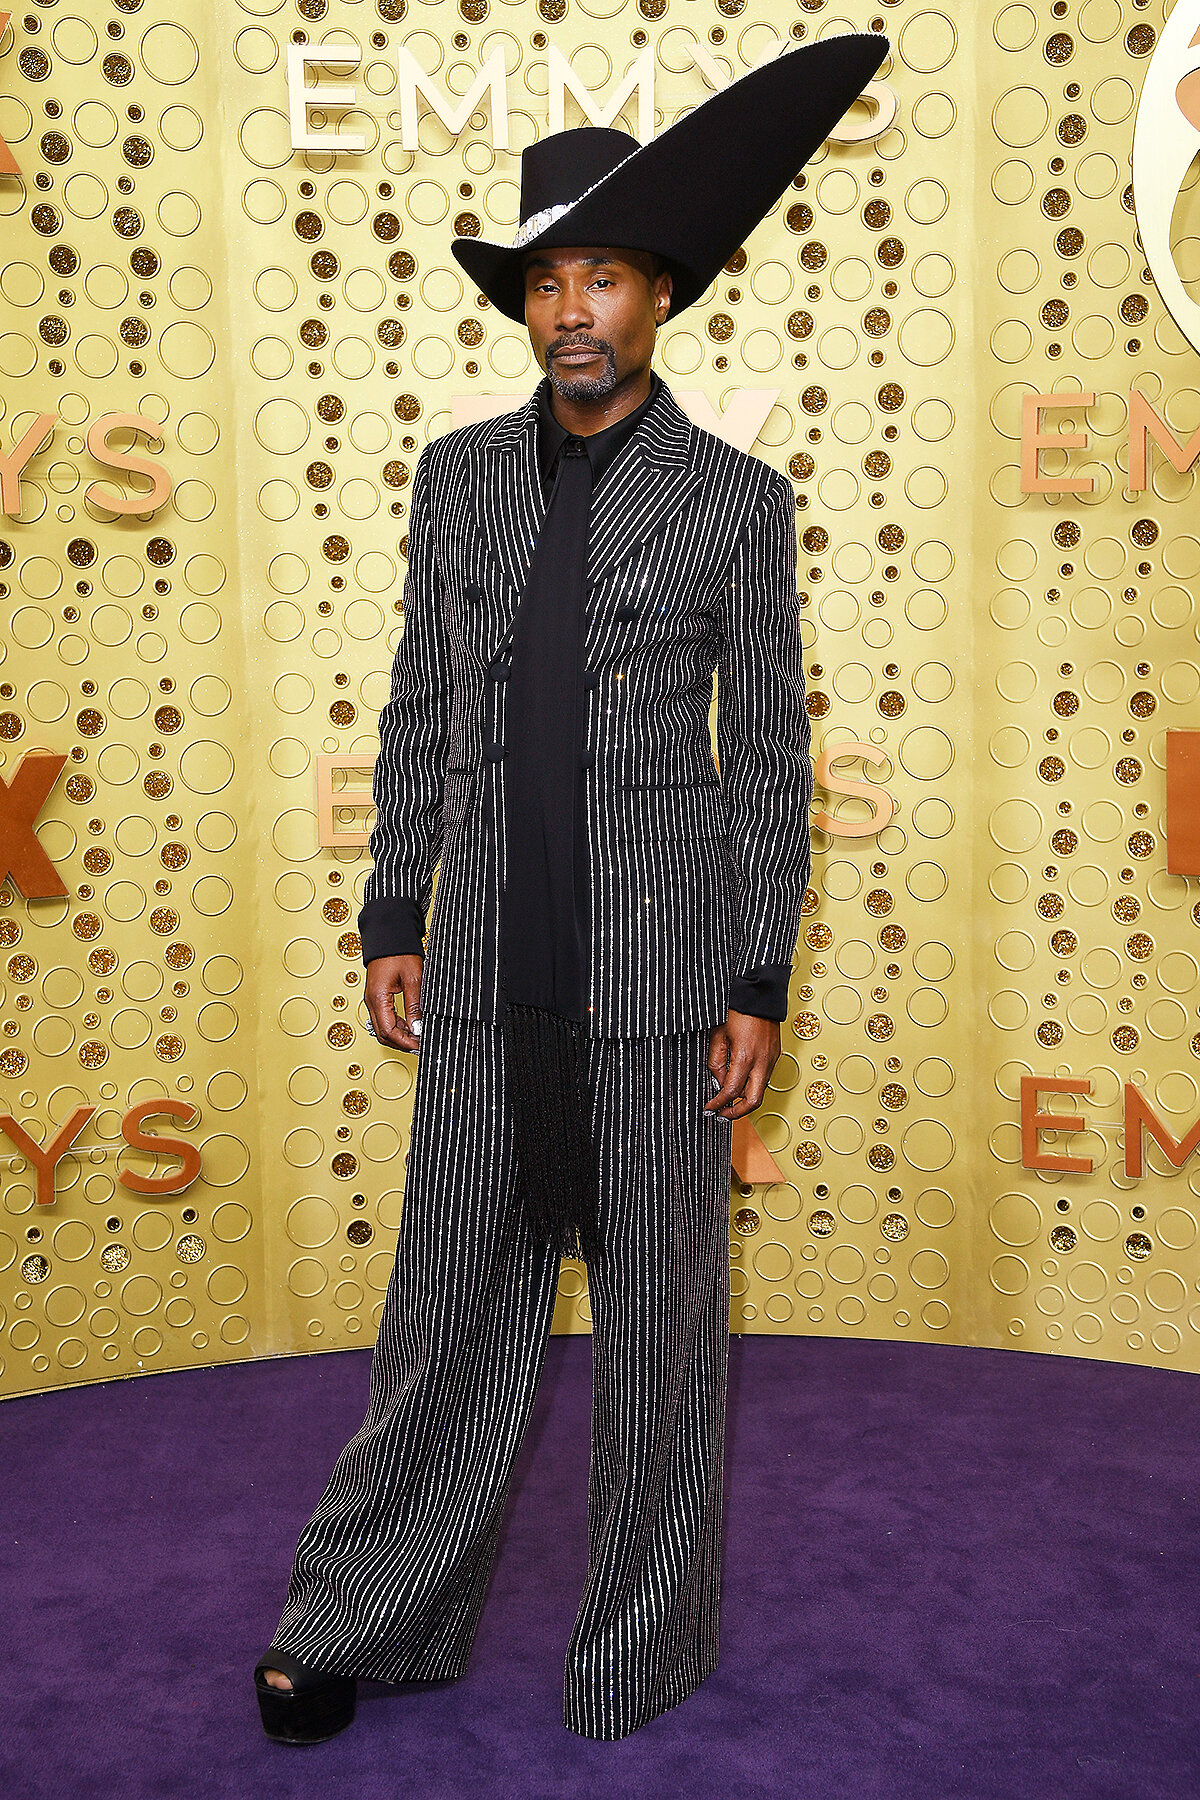 Billy Porter. Photo Source: People